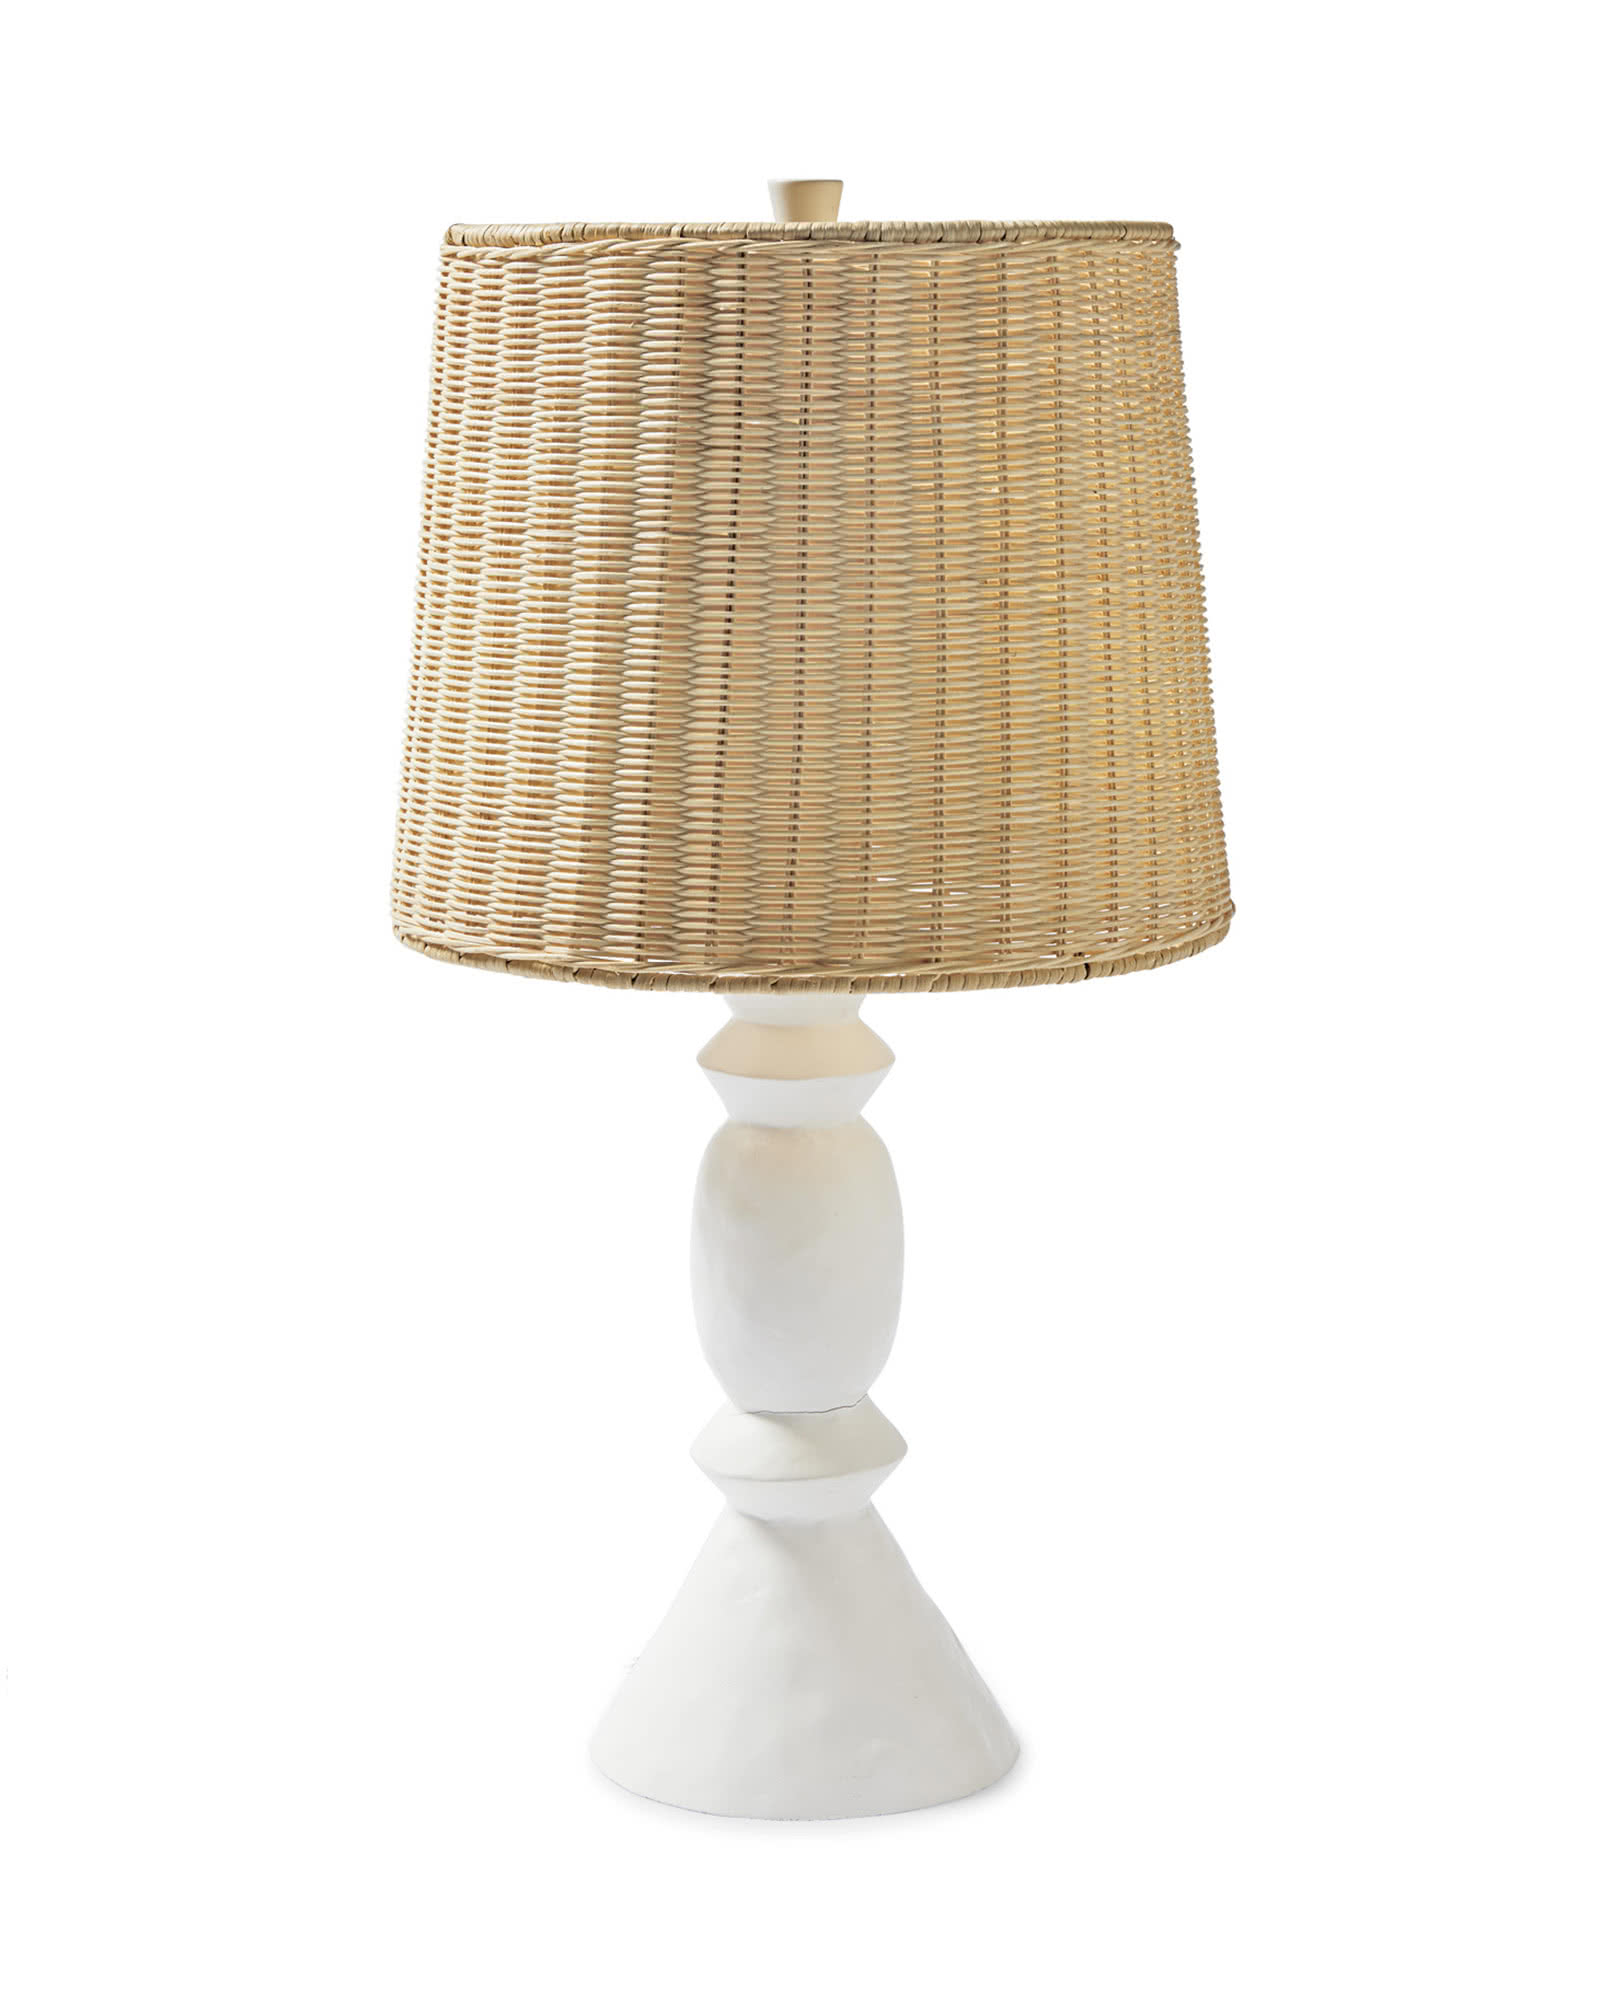 Brighton Table Lamp,